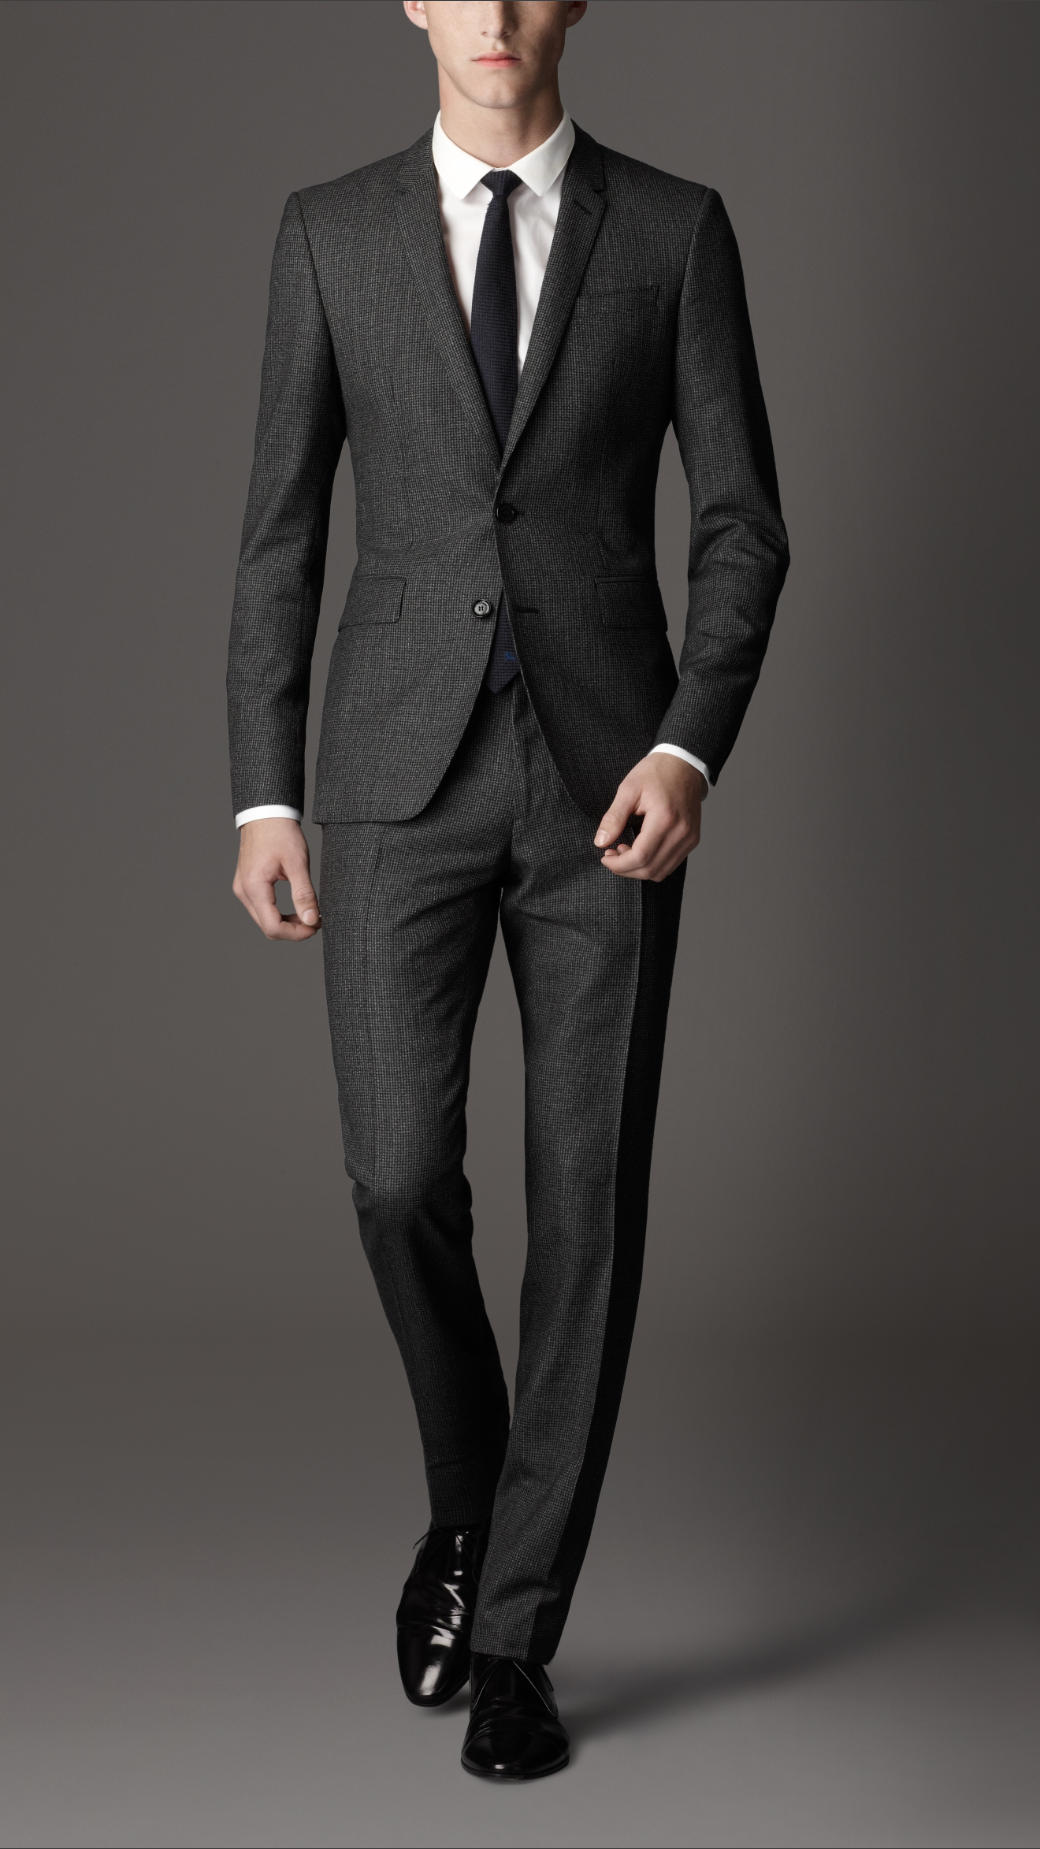 Burberry Slim Fit Wool Suit In Charcoal Gray For Men Lyst